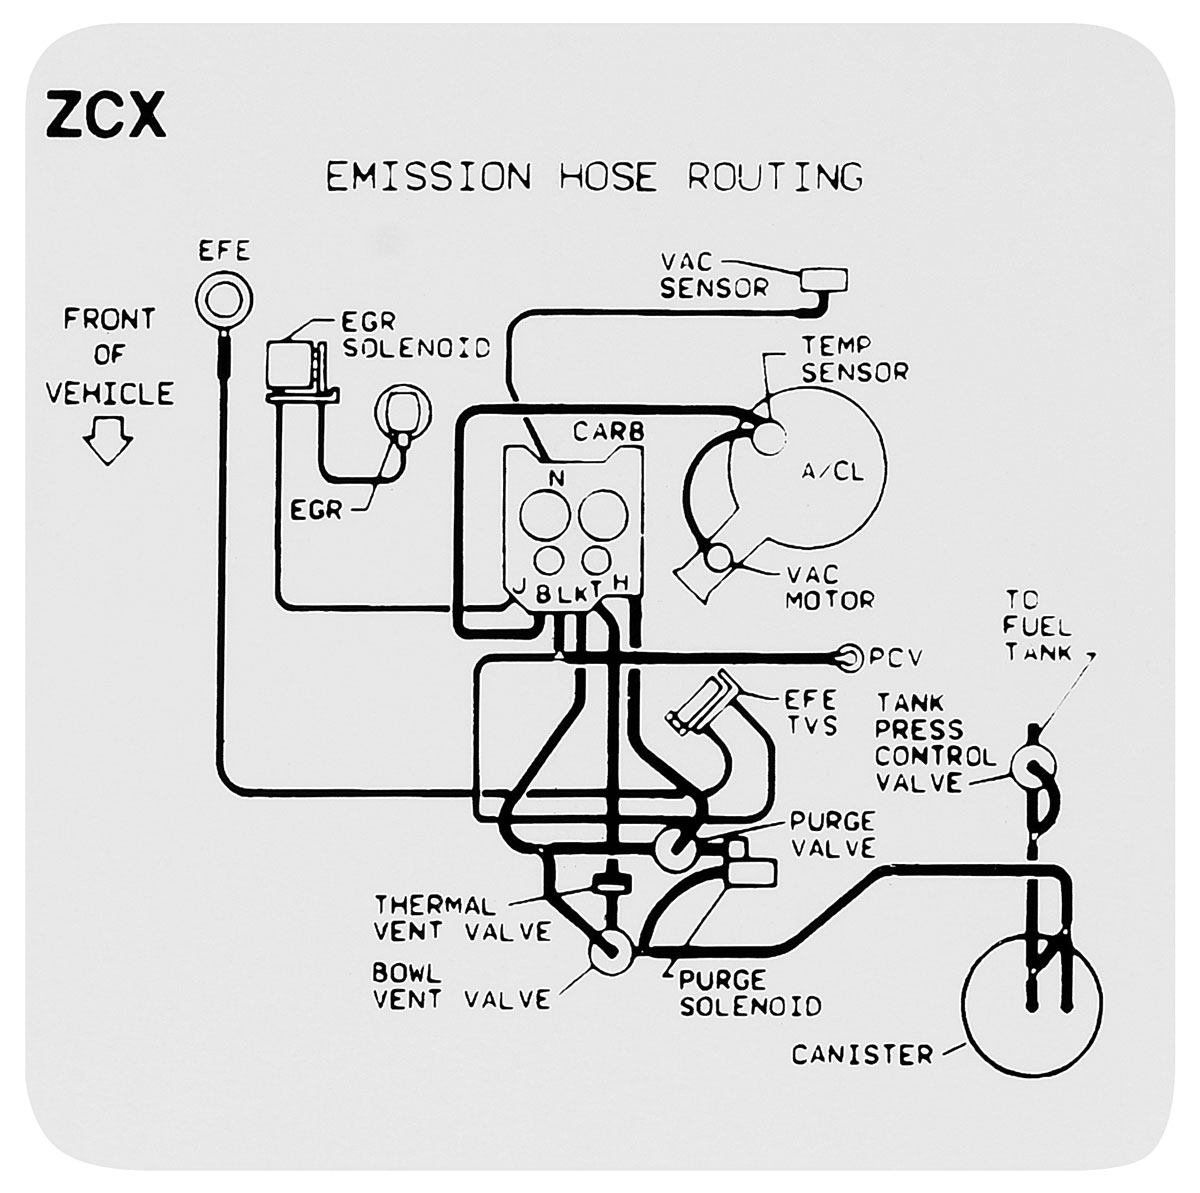 Auto Wiring Diagram 1987 Emissions Decal (Monte Carlo) 5.0 Emission Hose >  ...